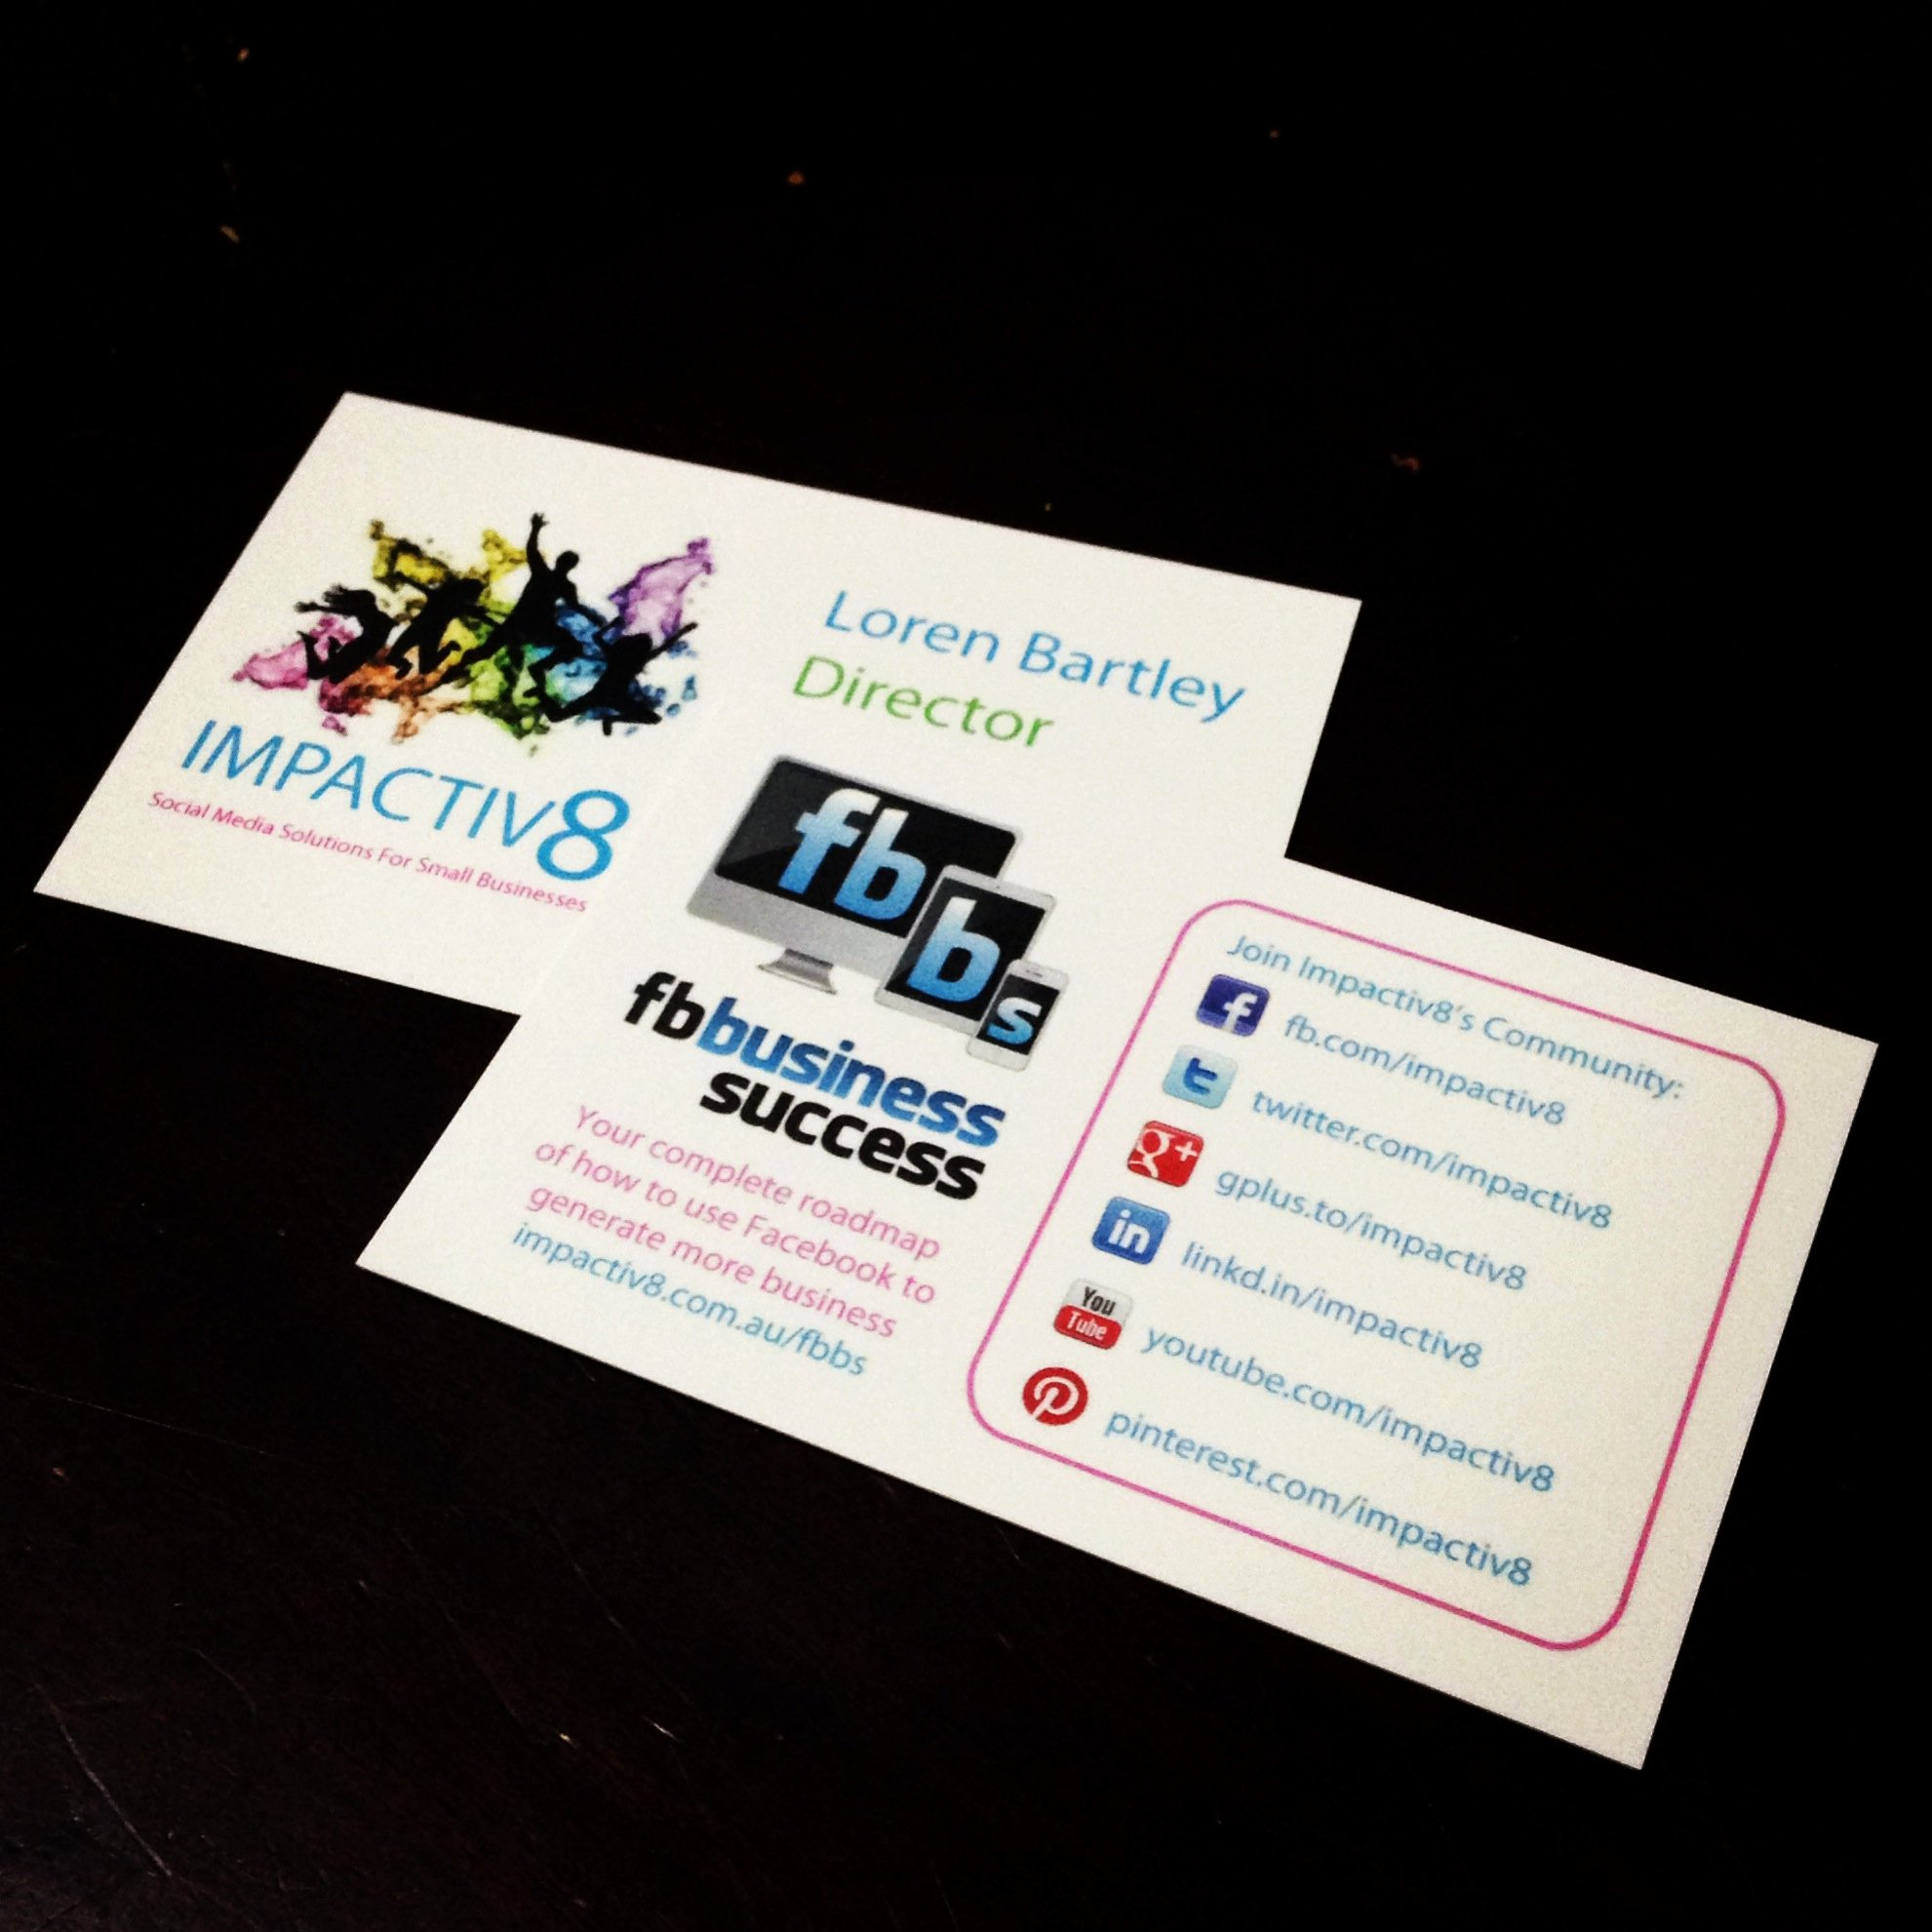 Social Media Business Cards Awesome Page Promotion Ideas Examples What Other Businesses are Doing